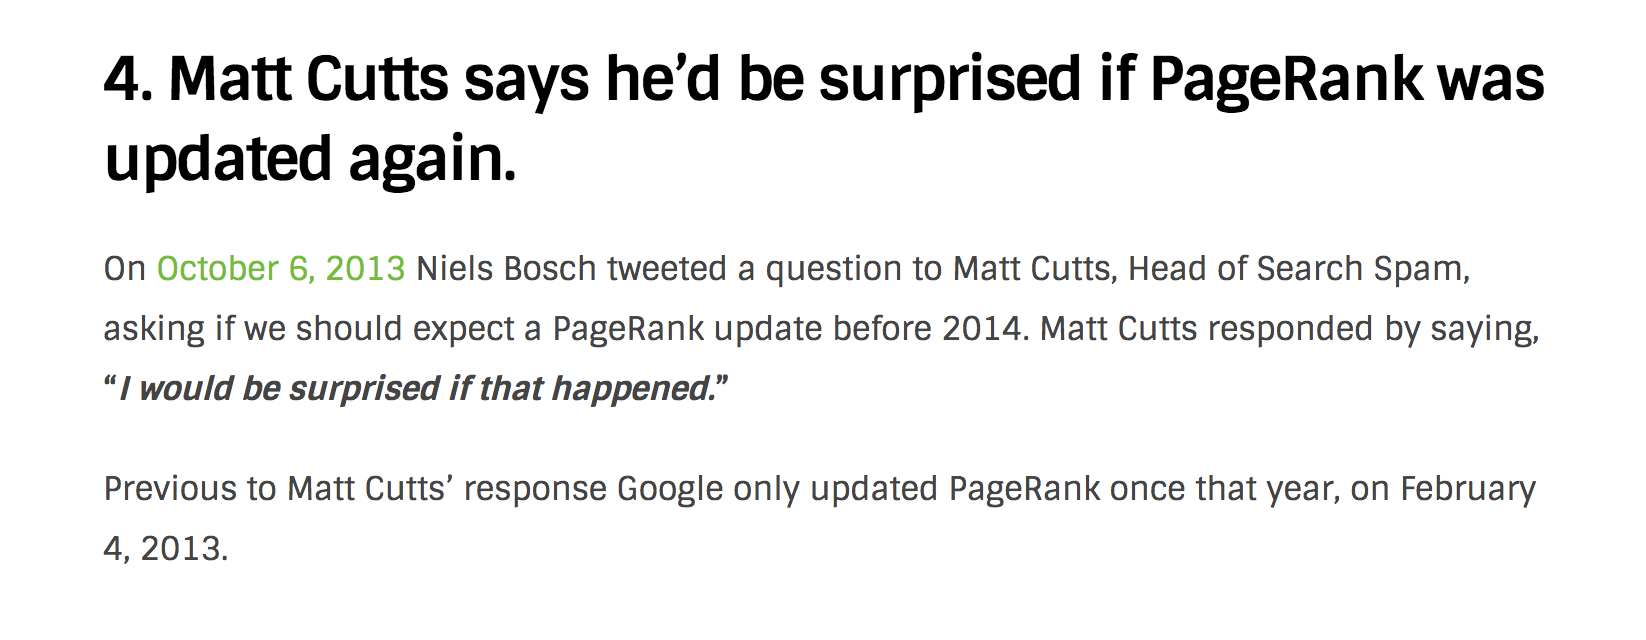 matt cutts on pagerank